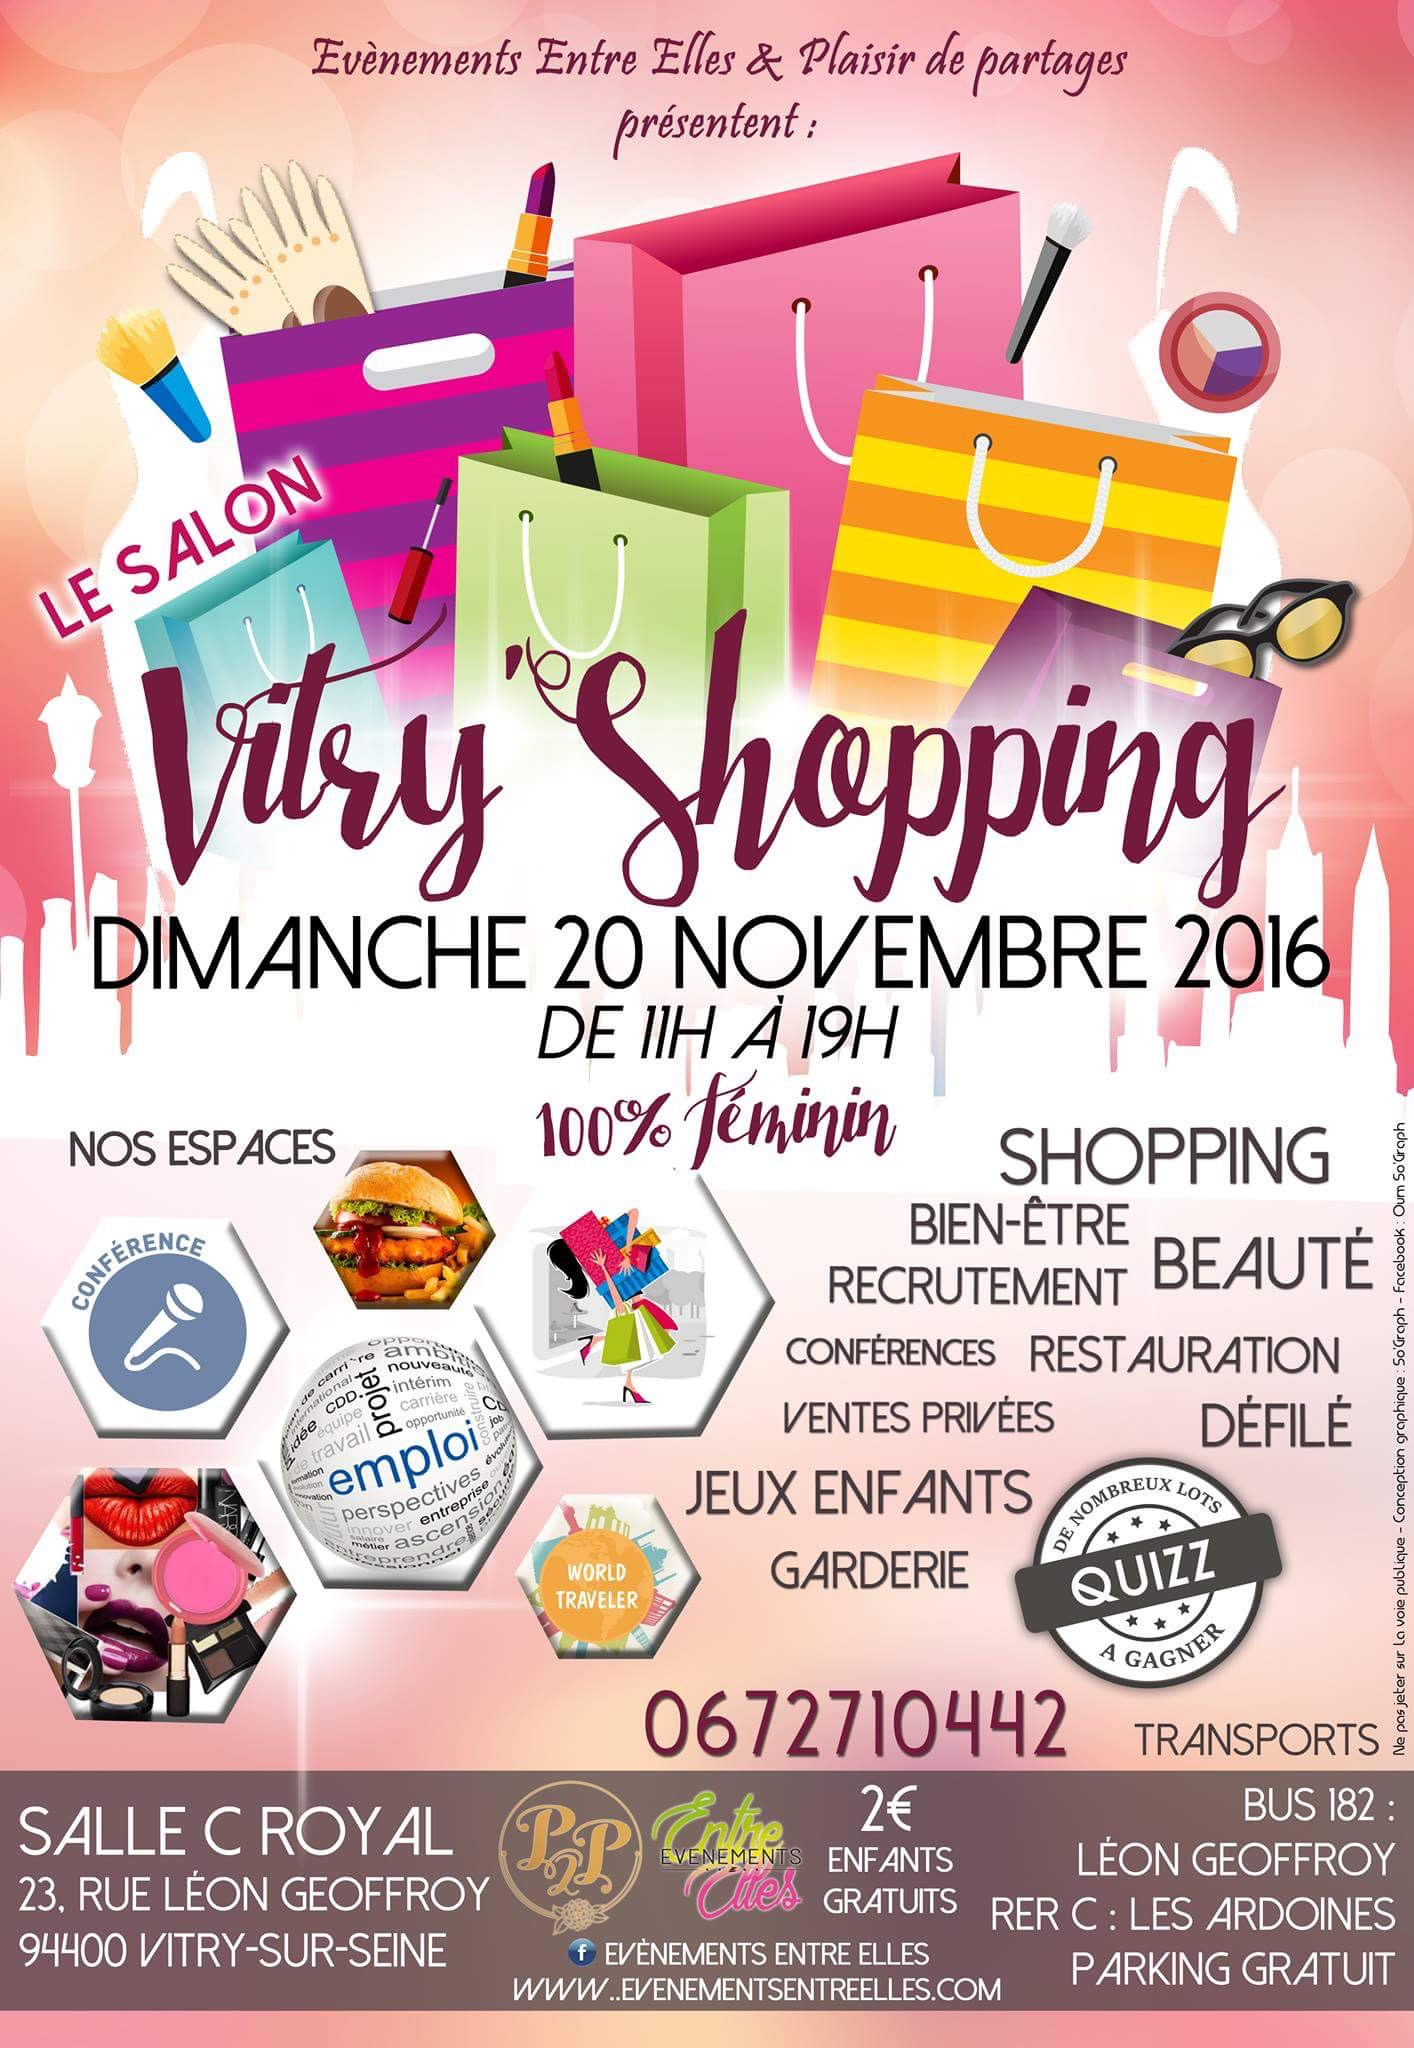 Le salon Vitry Shopping